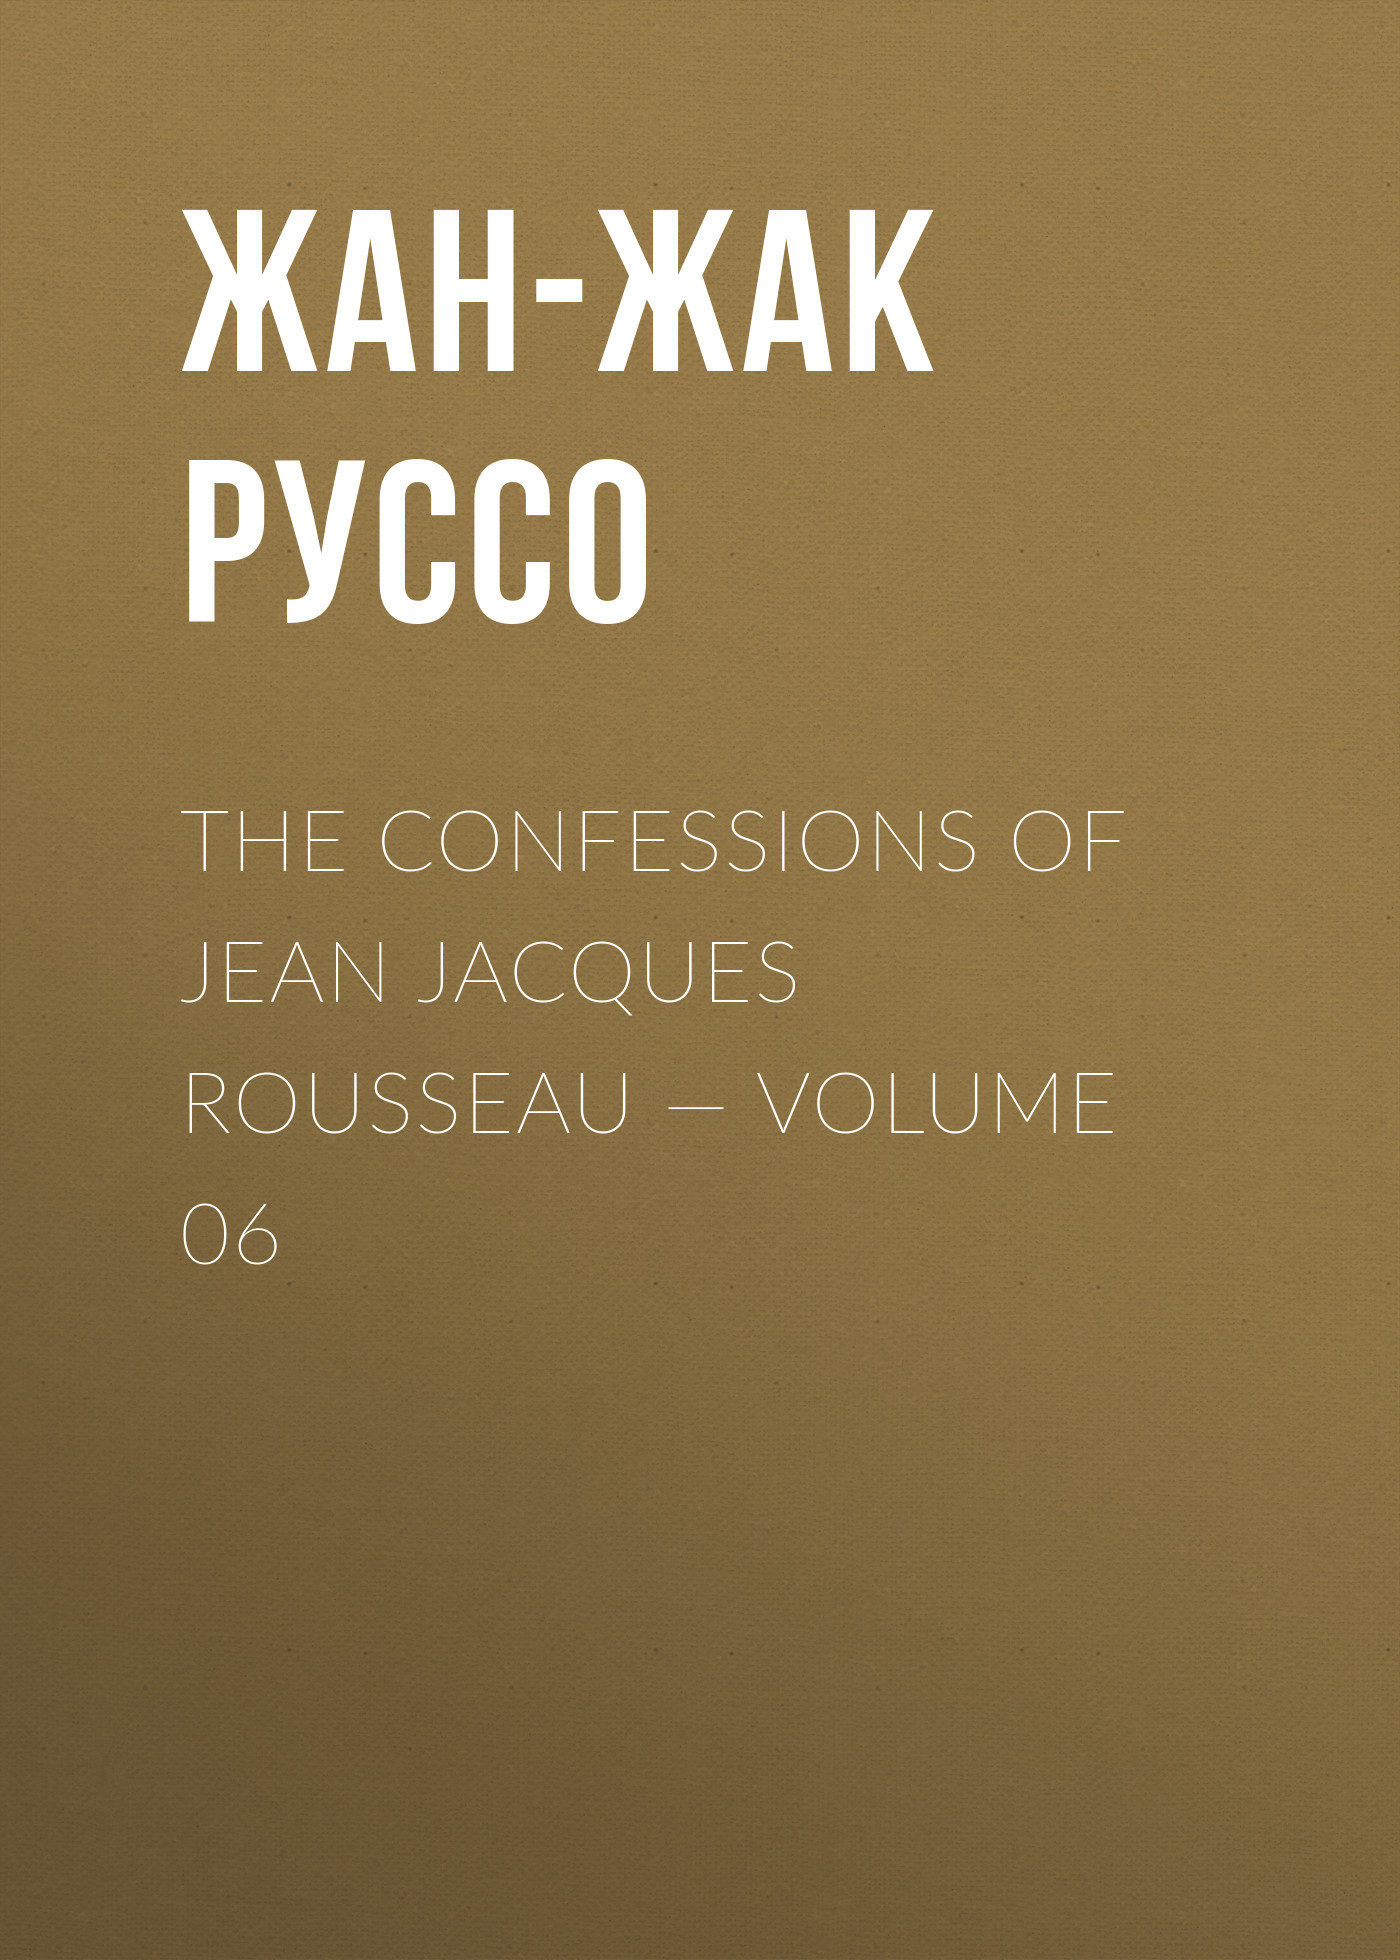 Жан-Жак Руссо The Confessions of Jean Jacques Rousseau — Volume 06 jean jacques rousseau memoires t 3